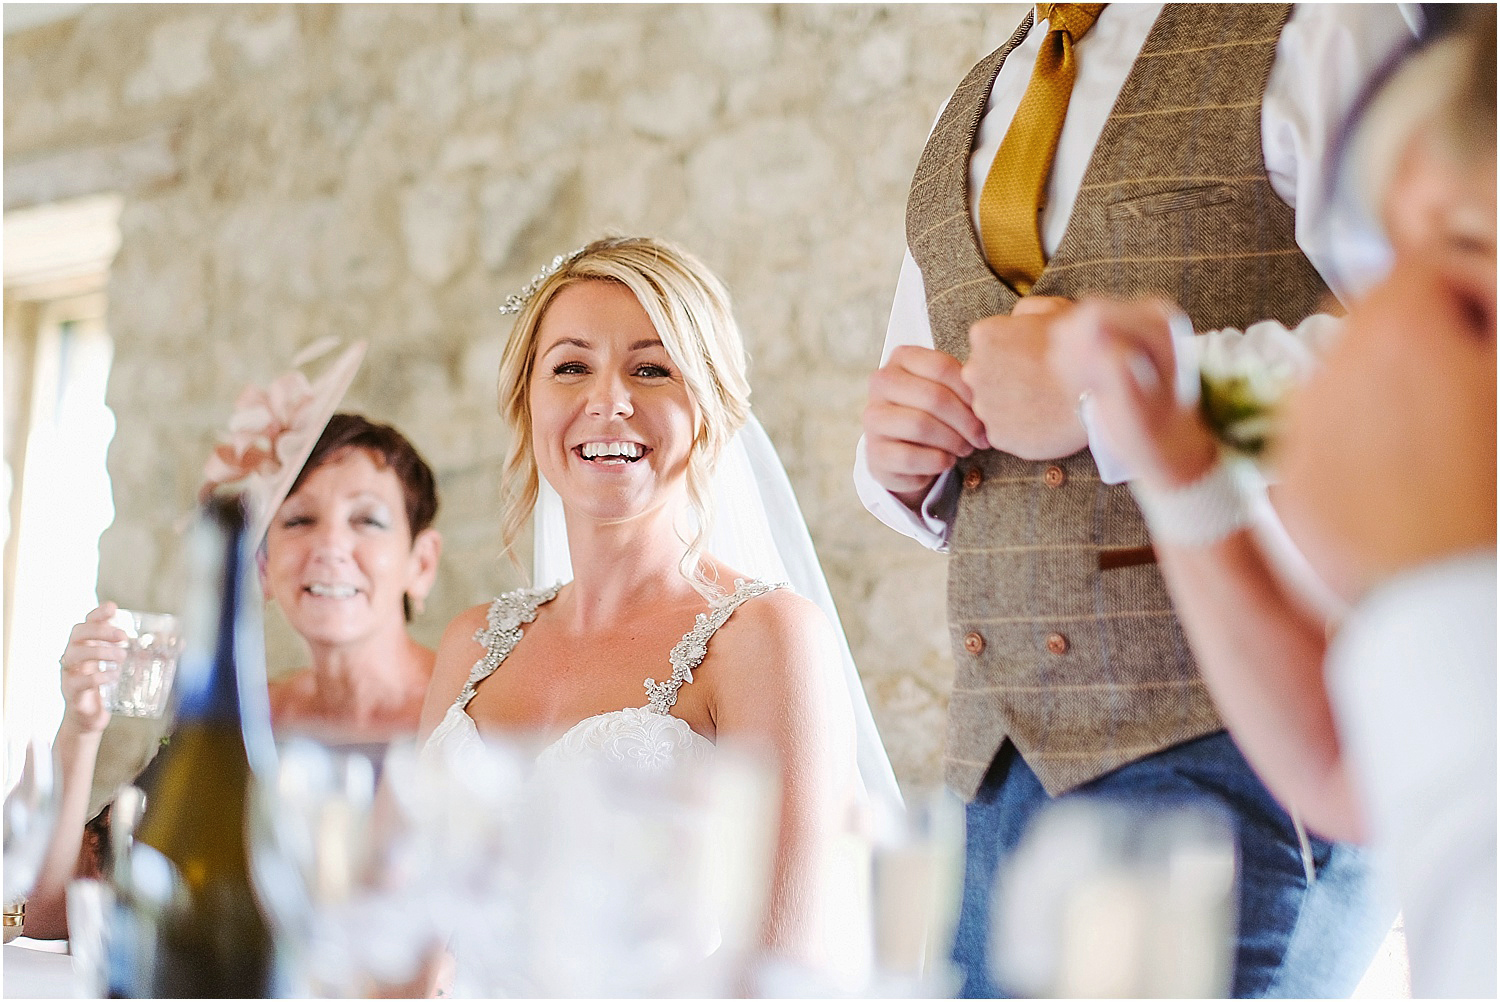 Wedding at Healey Barn - wedding photography by www.2tonephotography.co.uk 073.jpg